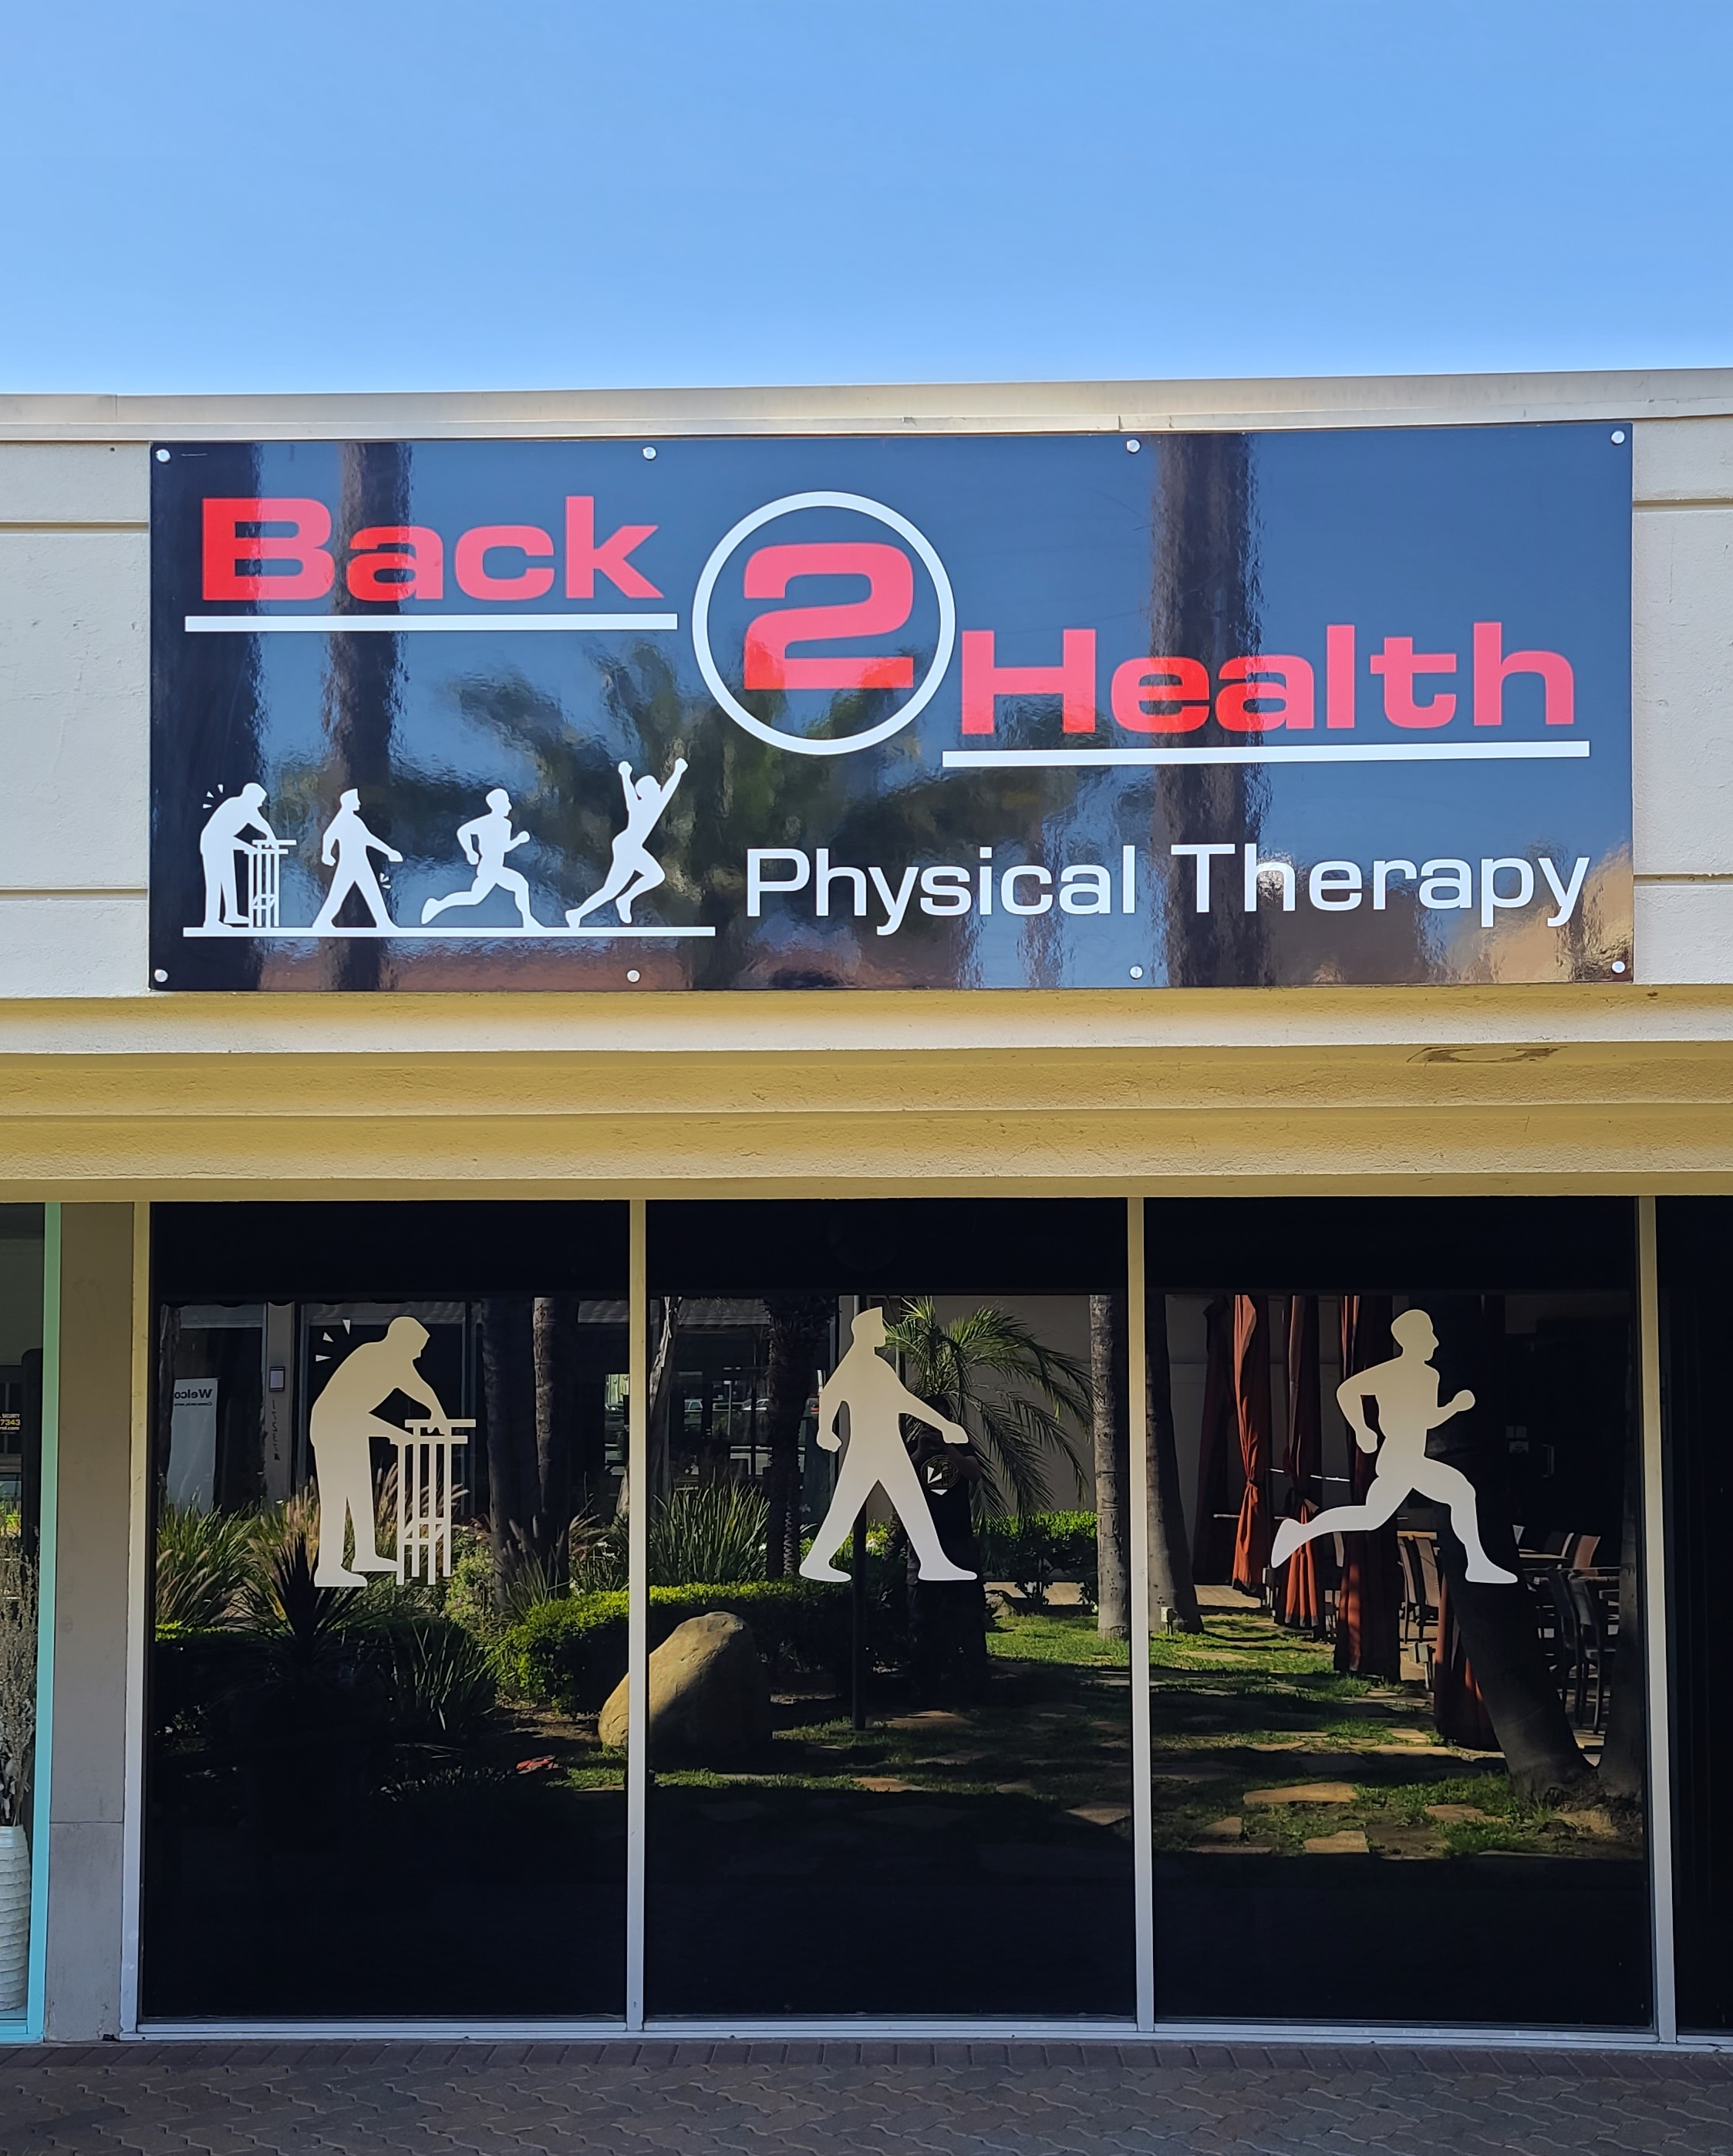 These custom outdoor signs we fabricated and installed for Back 2 Health in Encino will make them stand out from the rest and draw customers in.